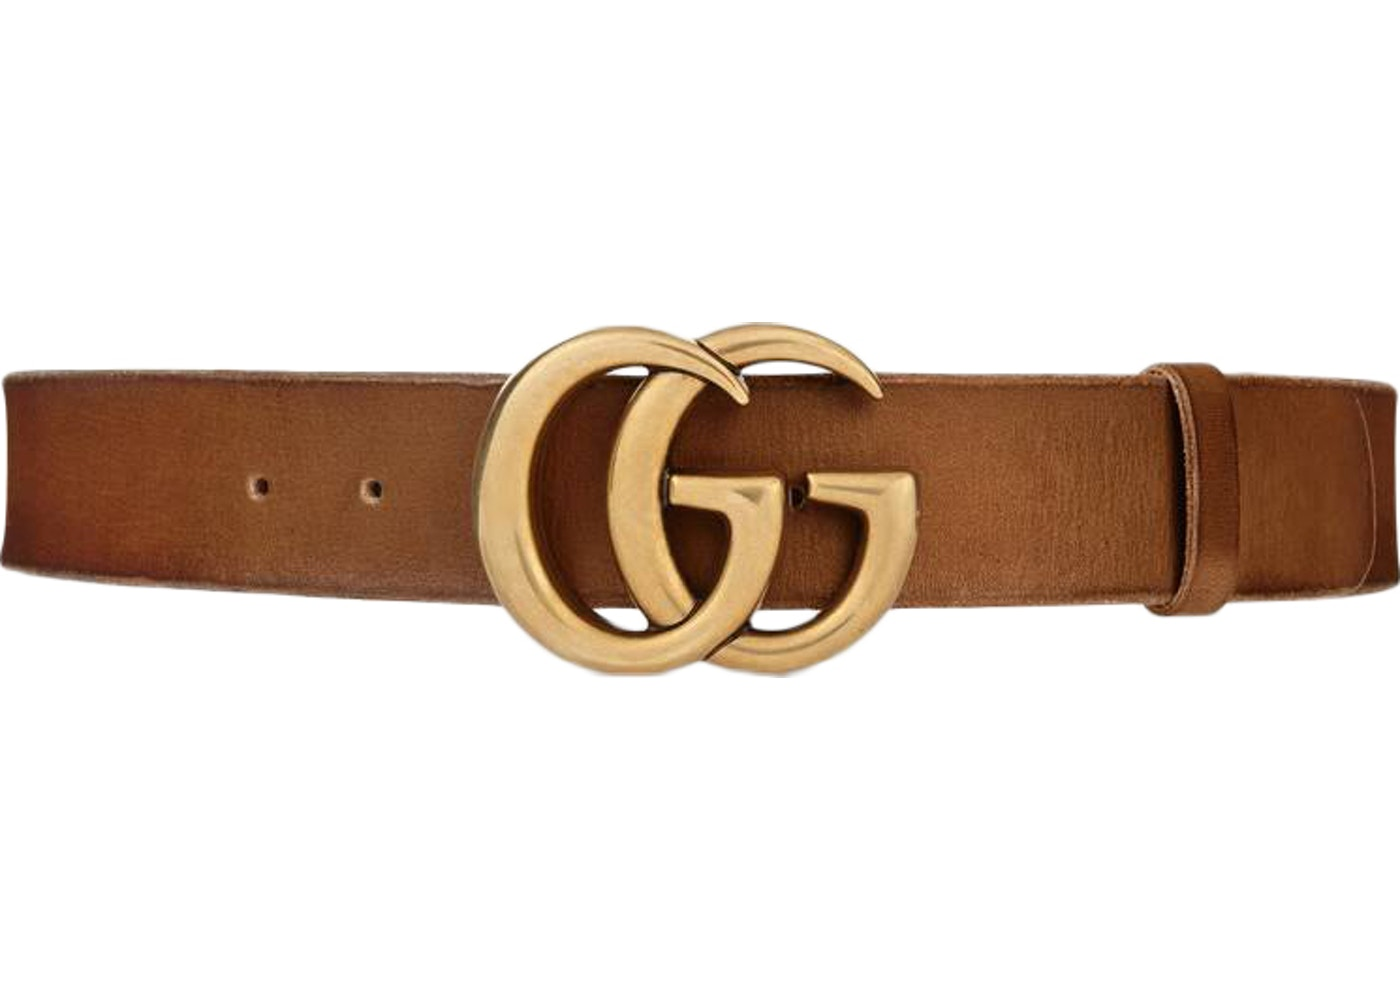 2c4b7447225 Gucci Double G Buckle Leather Belt 1.5 Width 70-28 Brown. 70-28 Brown